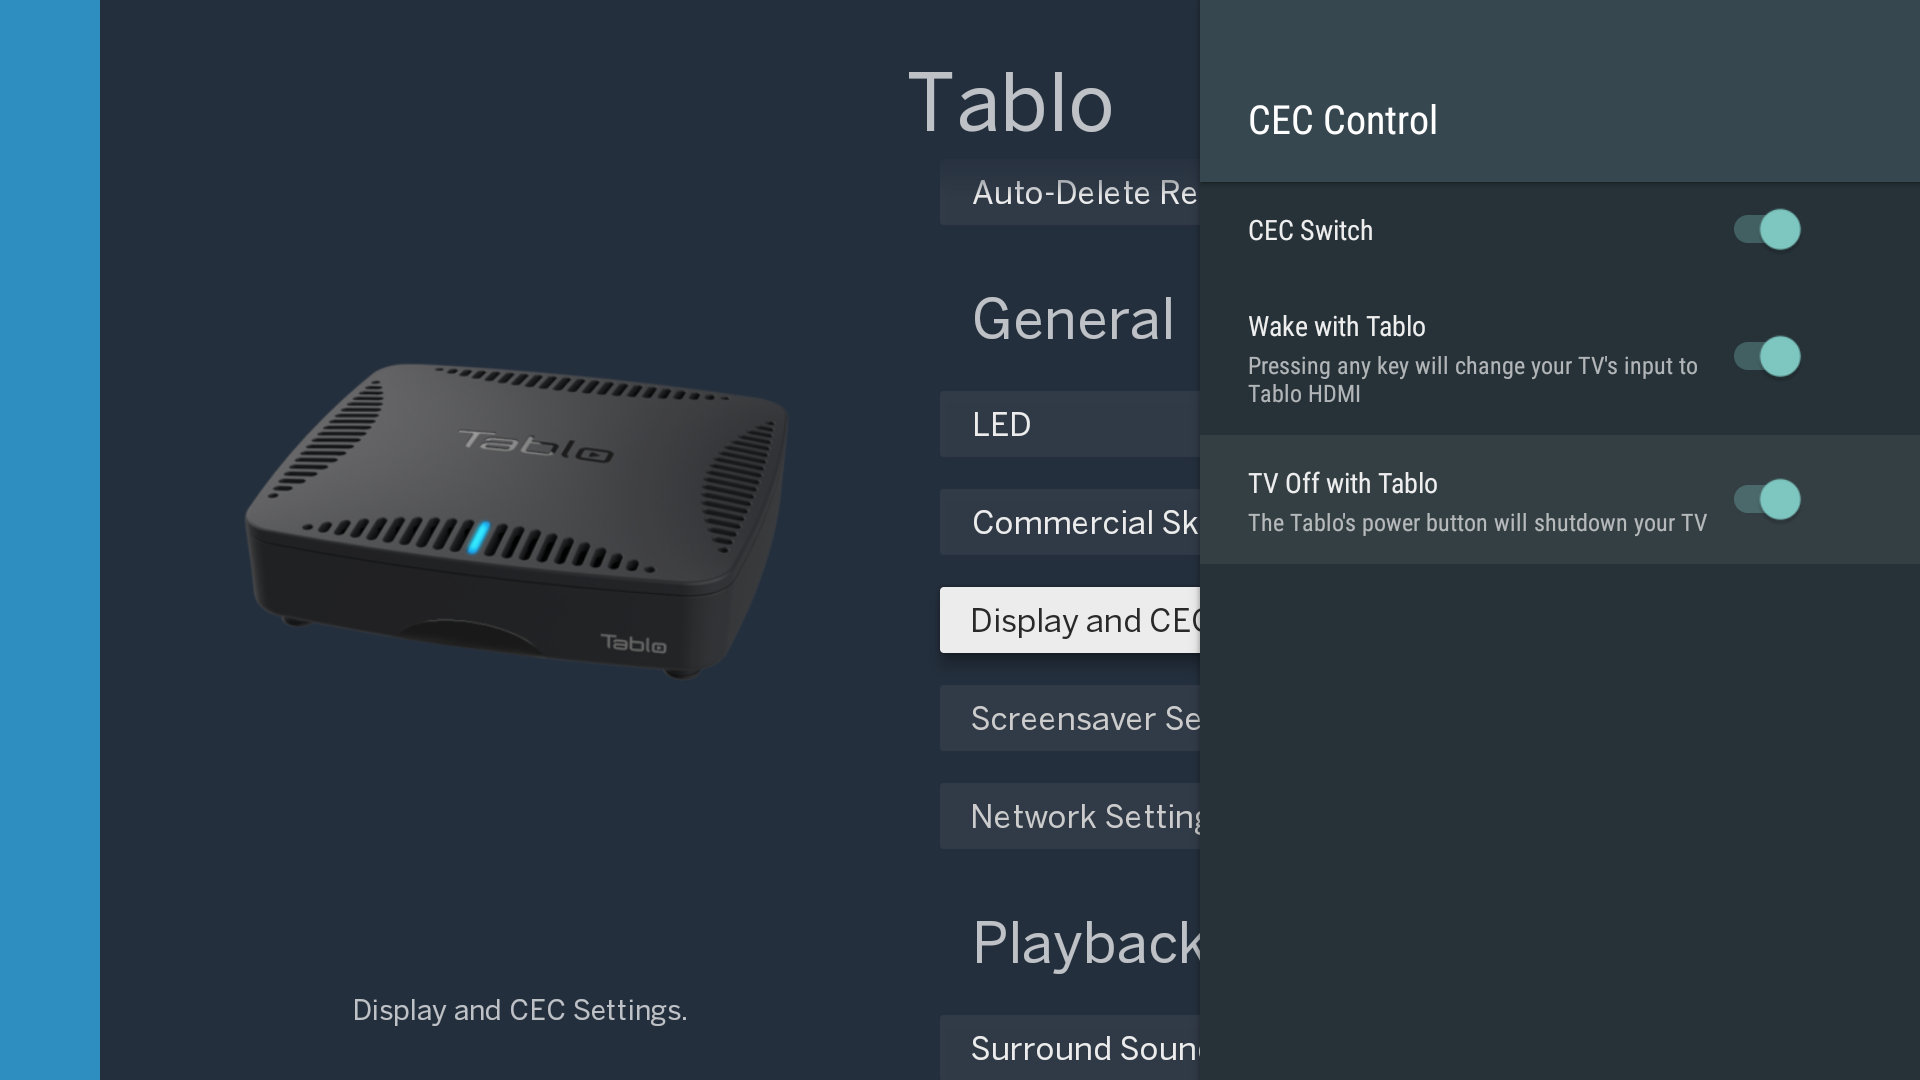 tablo_dual_hdmi_cec_all_enabled.png